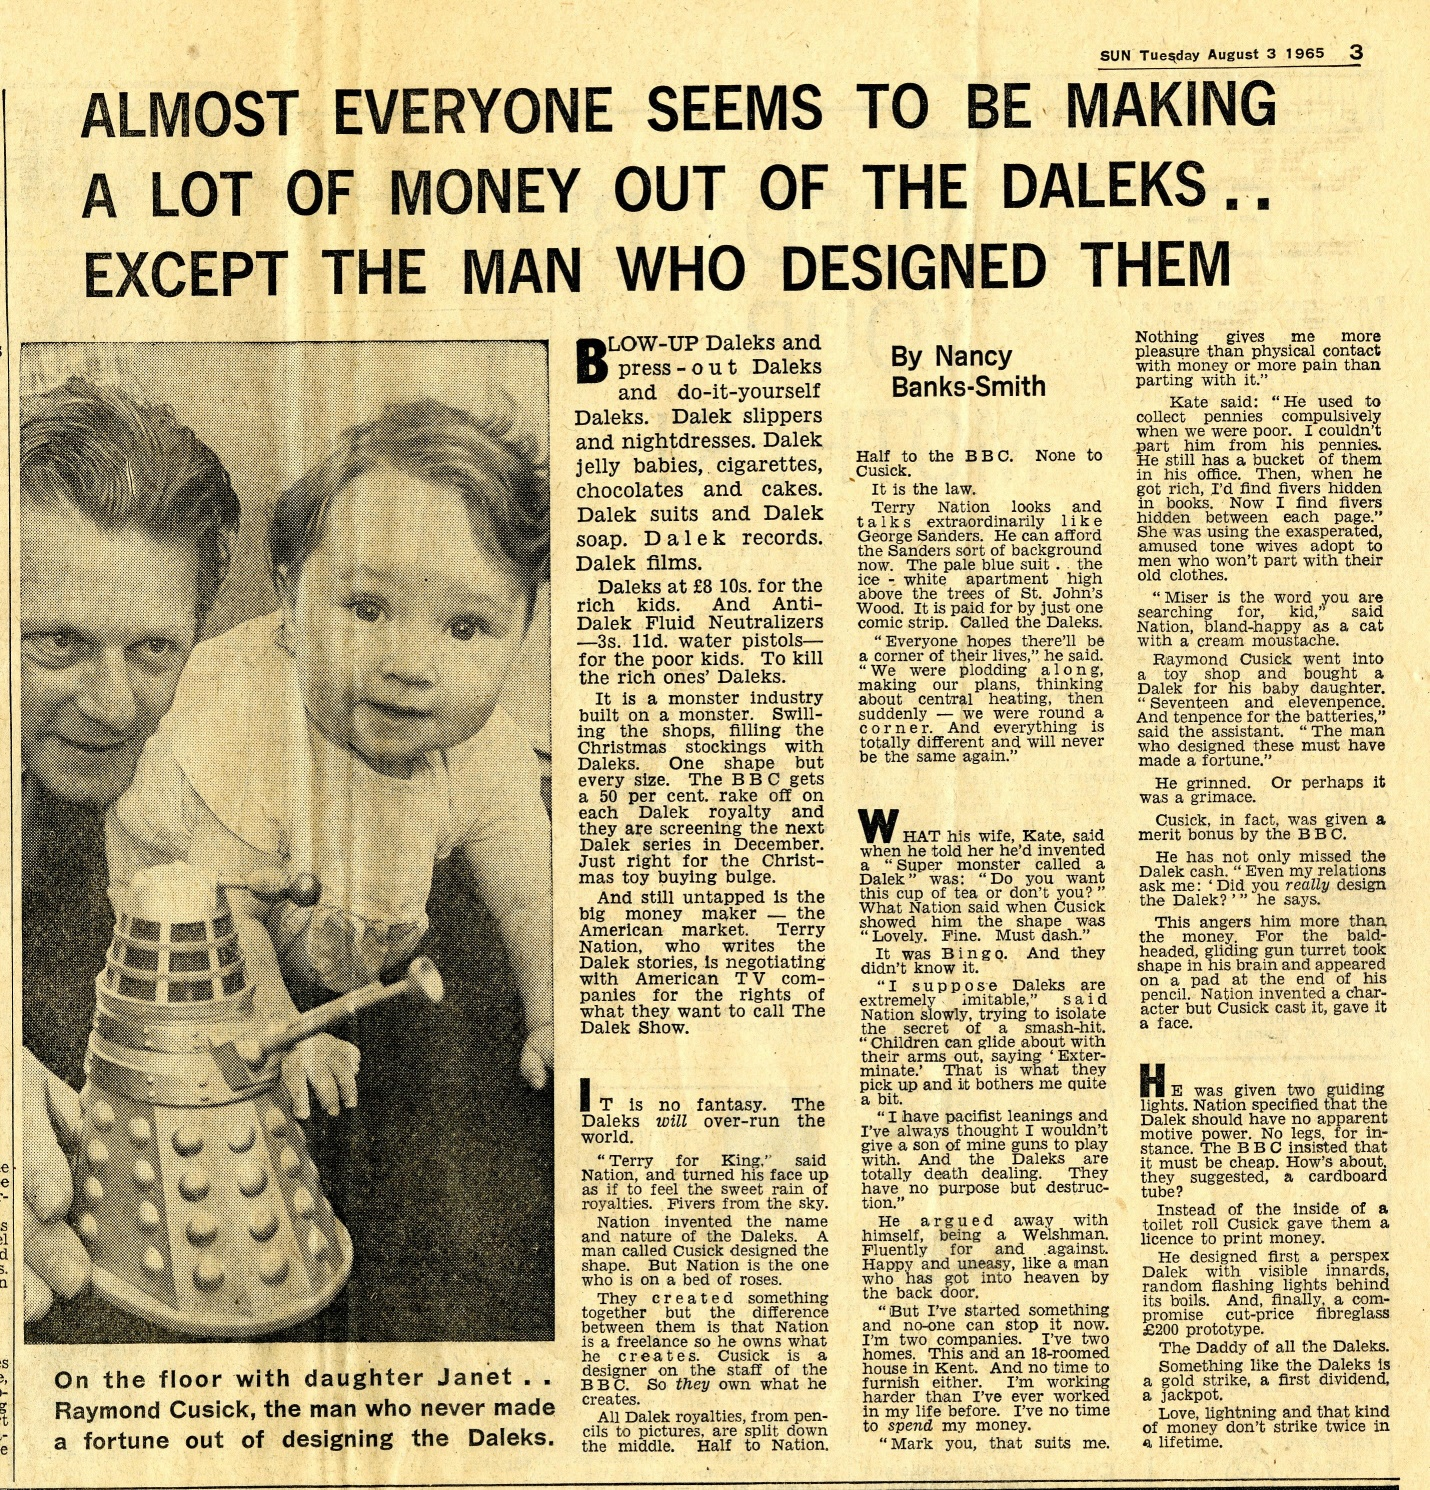 The Sun, August 3, 1965 (from the Raymond Cusick cutting collection)